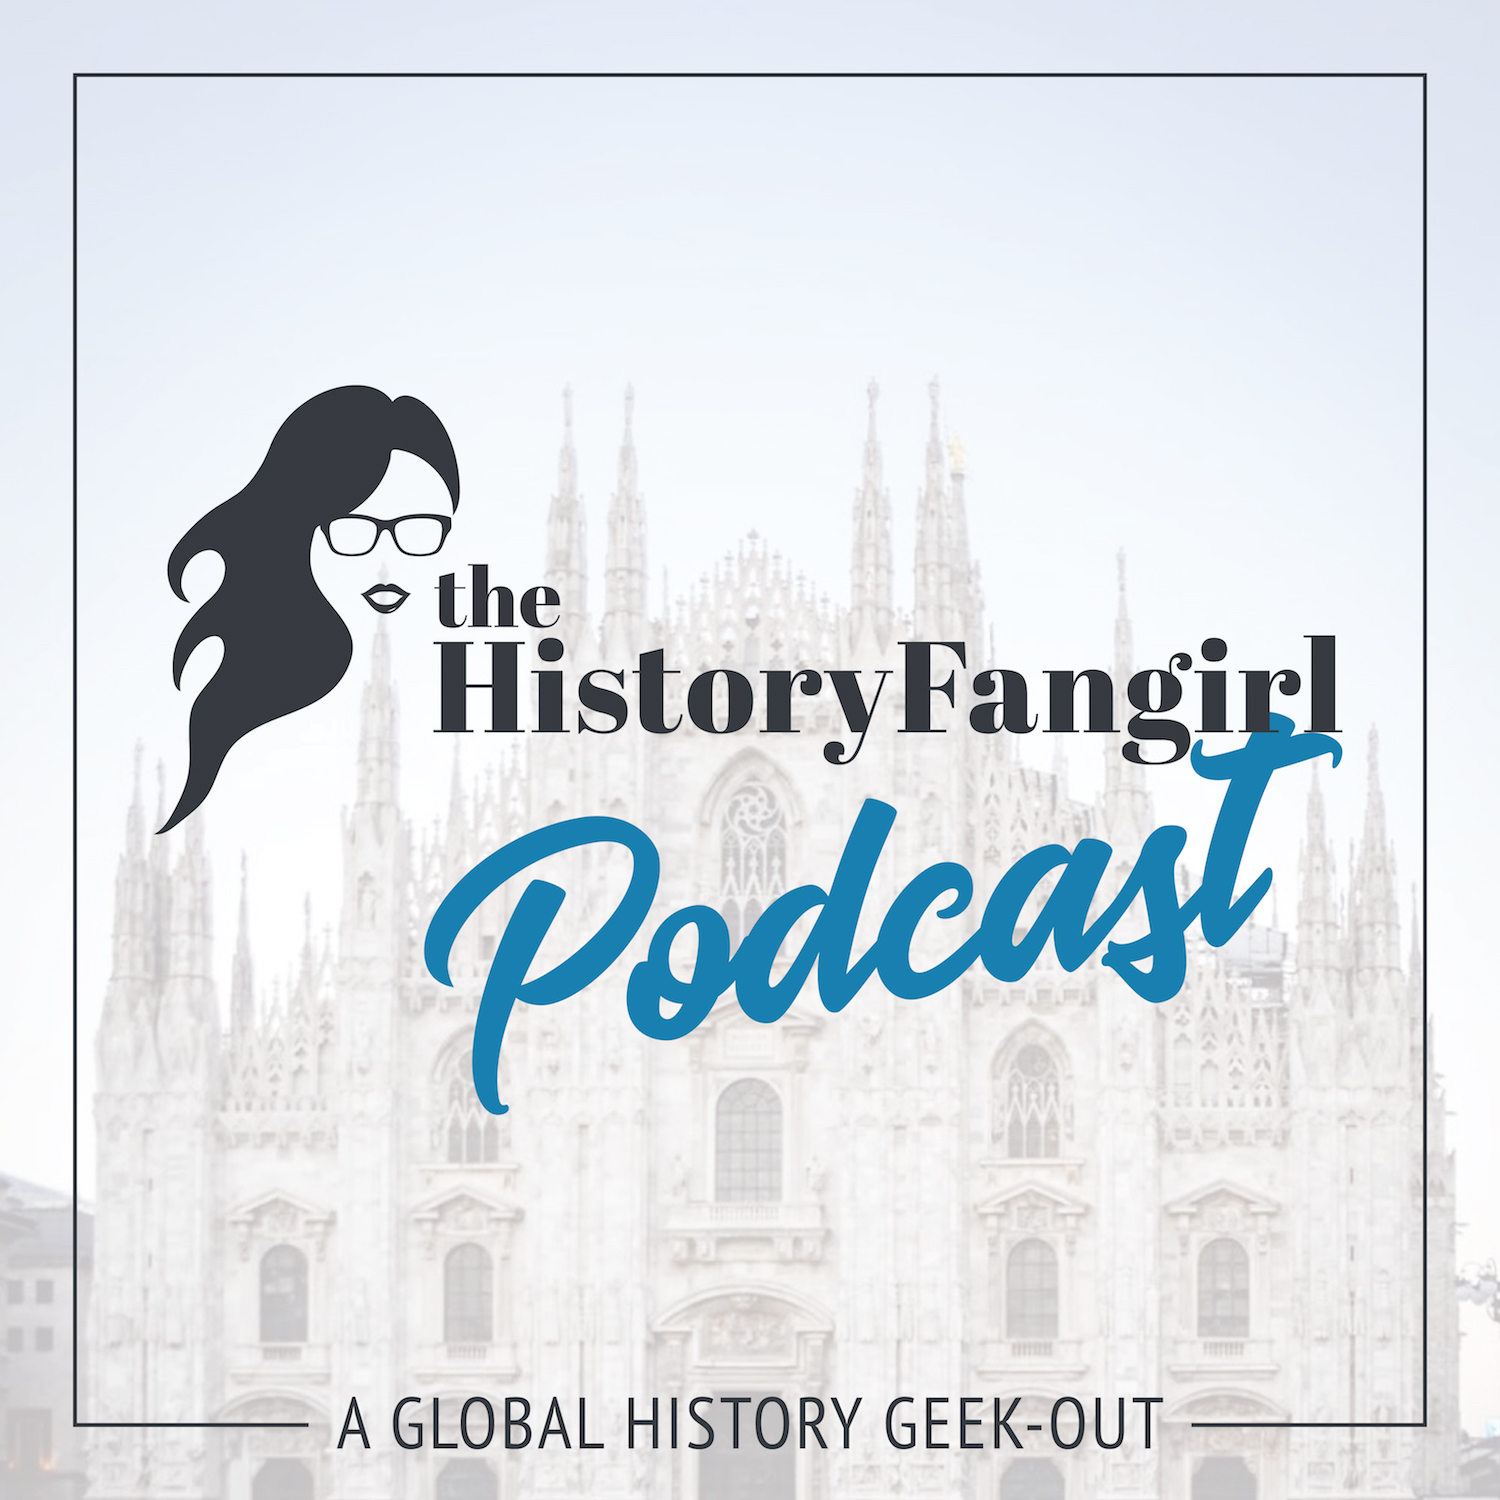 The History Fangirl Podcast